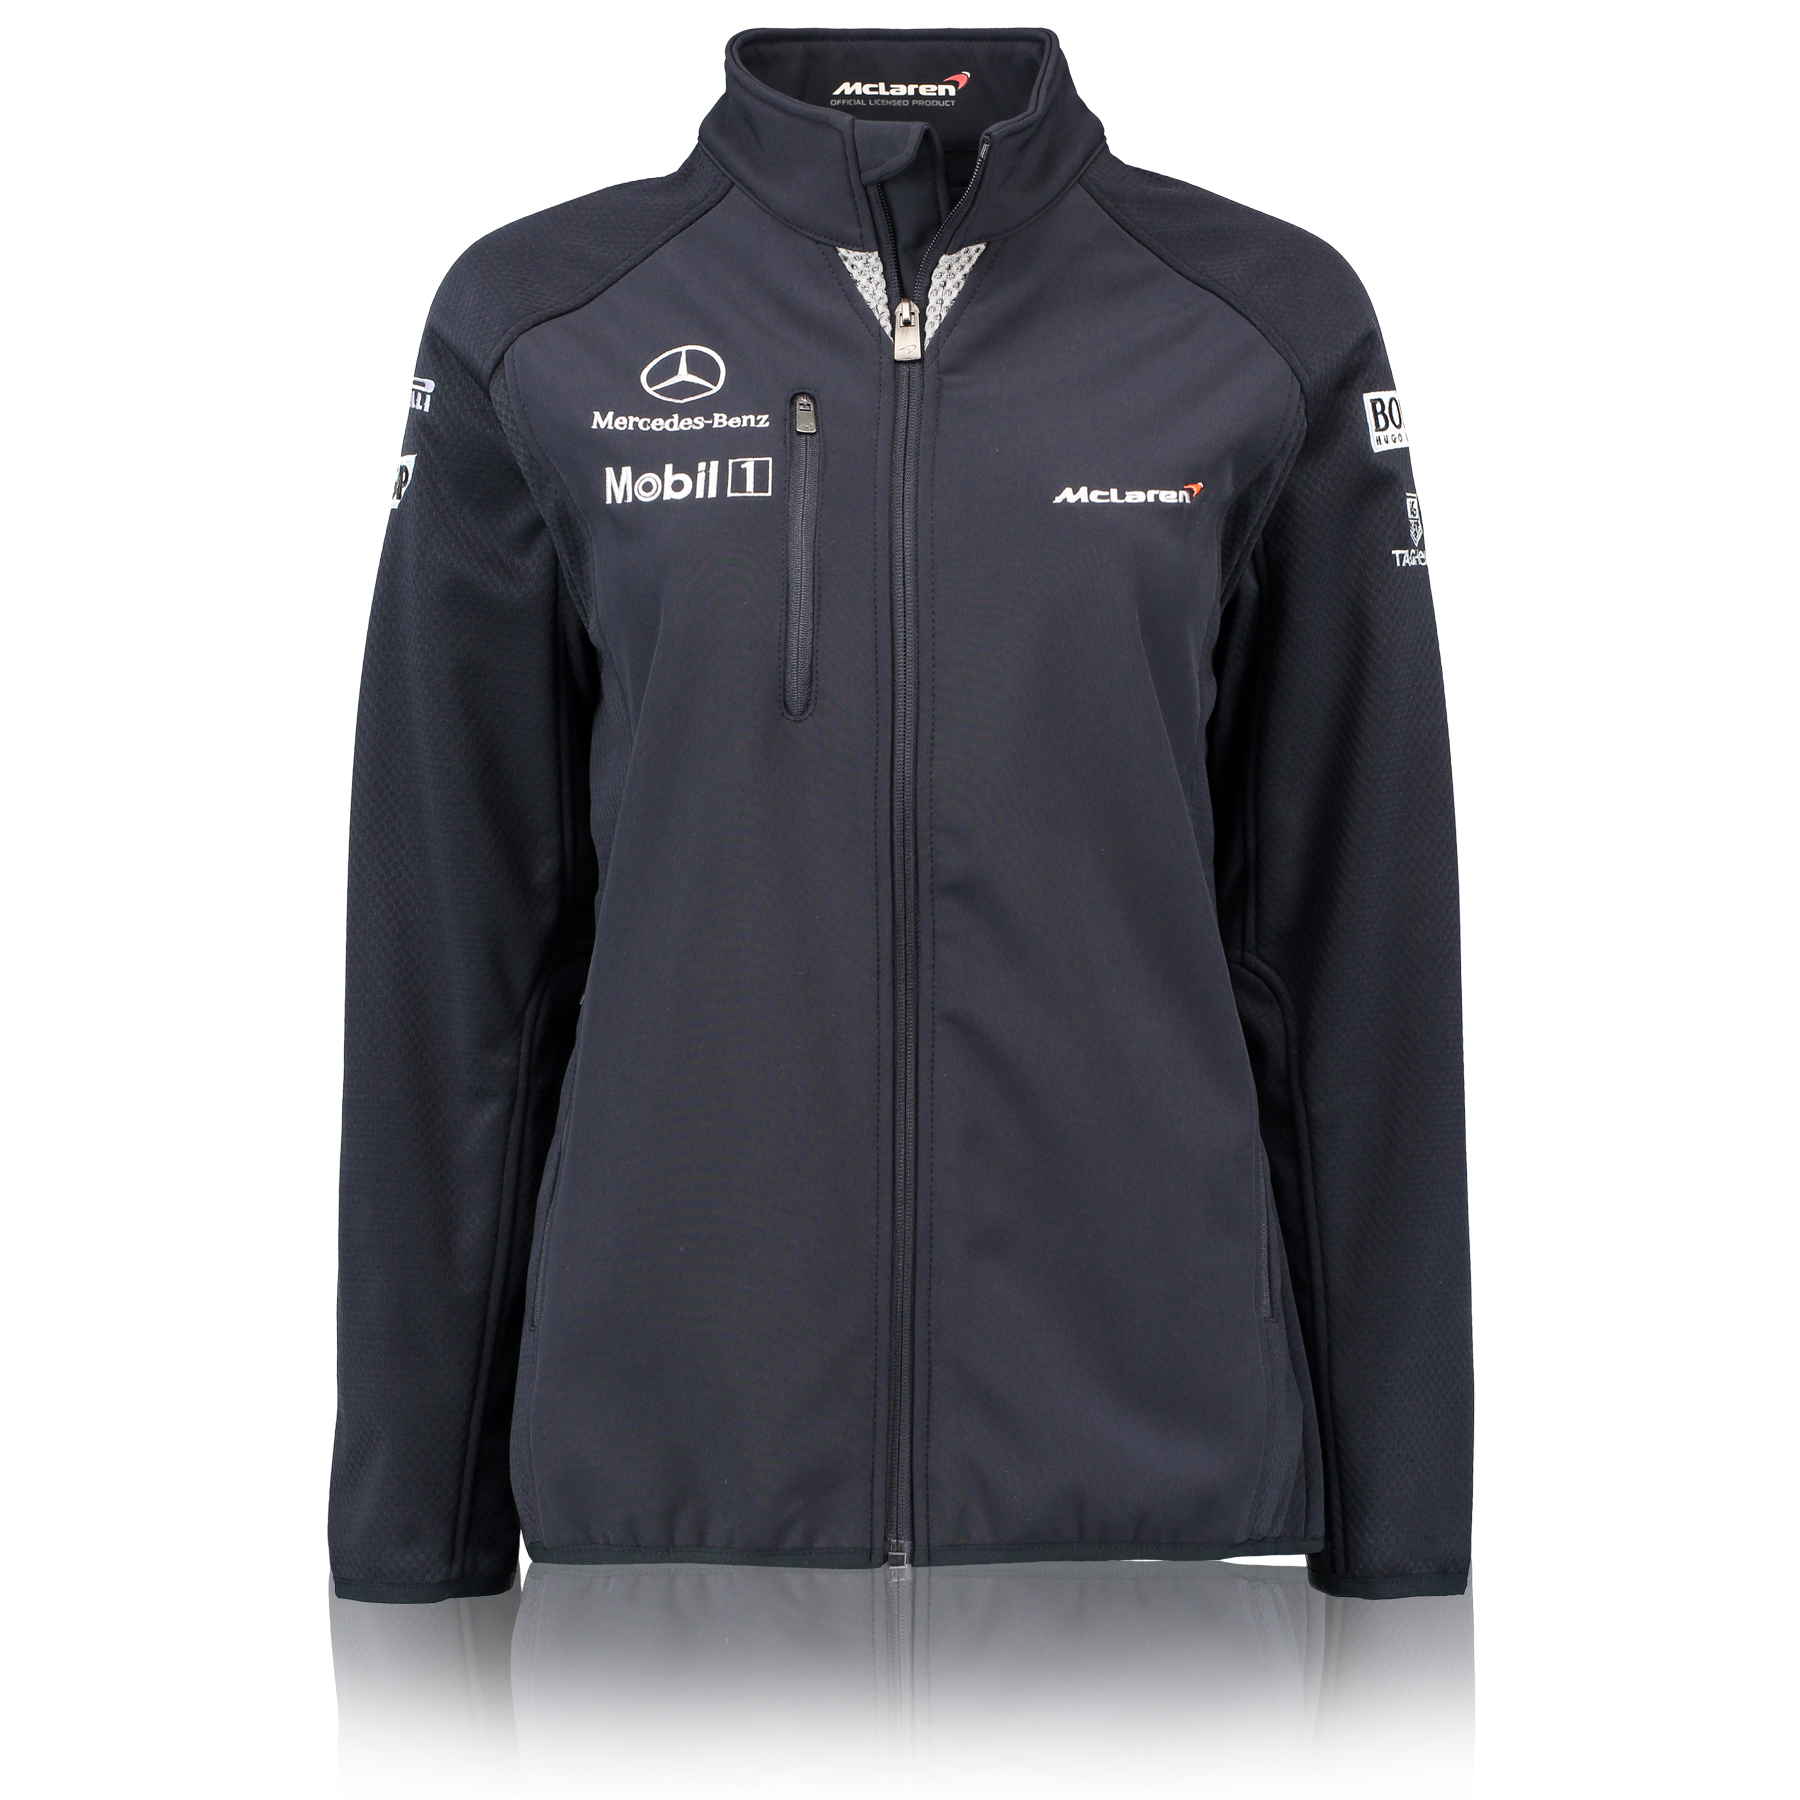 McLaren Mercedes 2014 Team Softshell - Womens